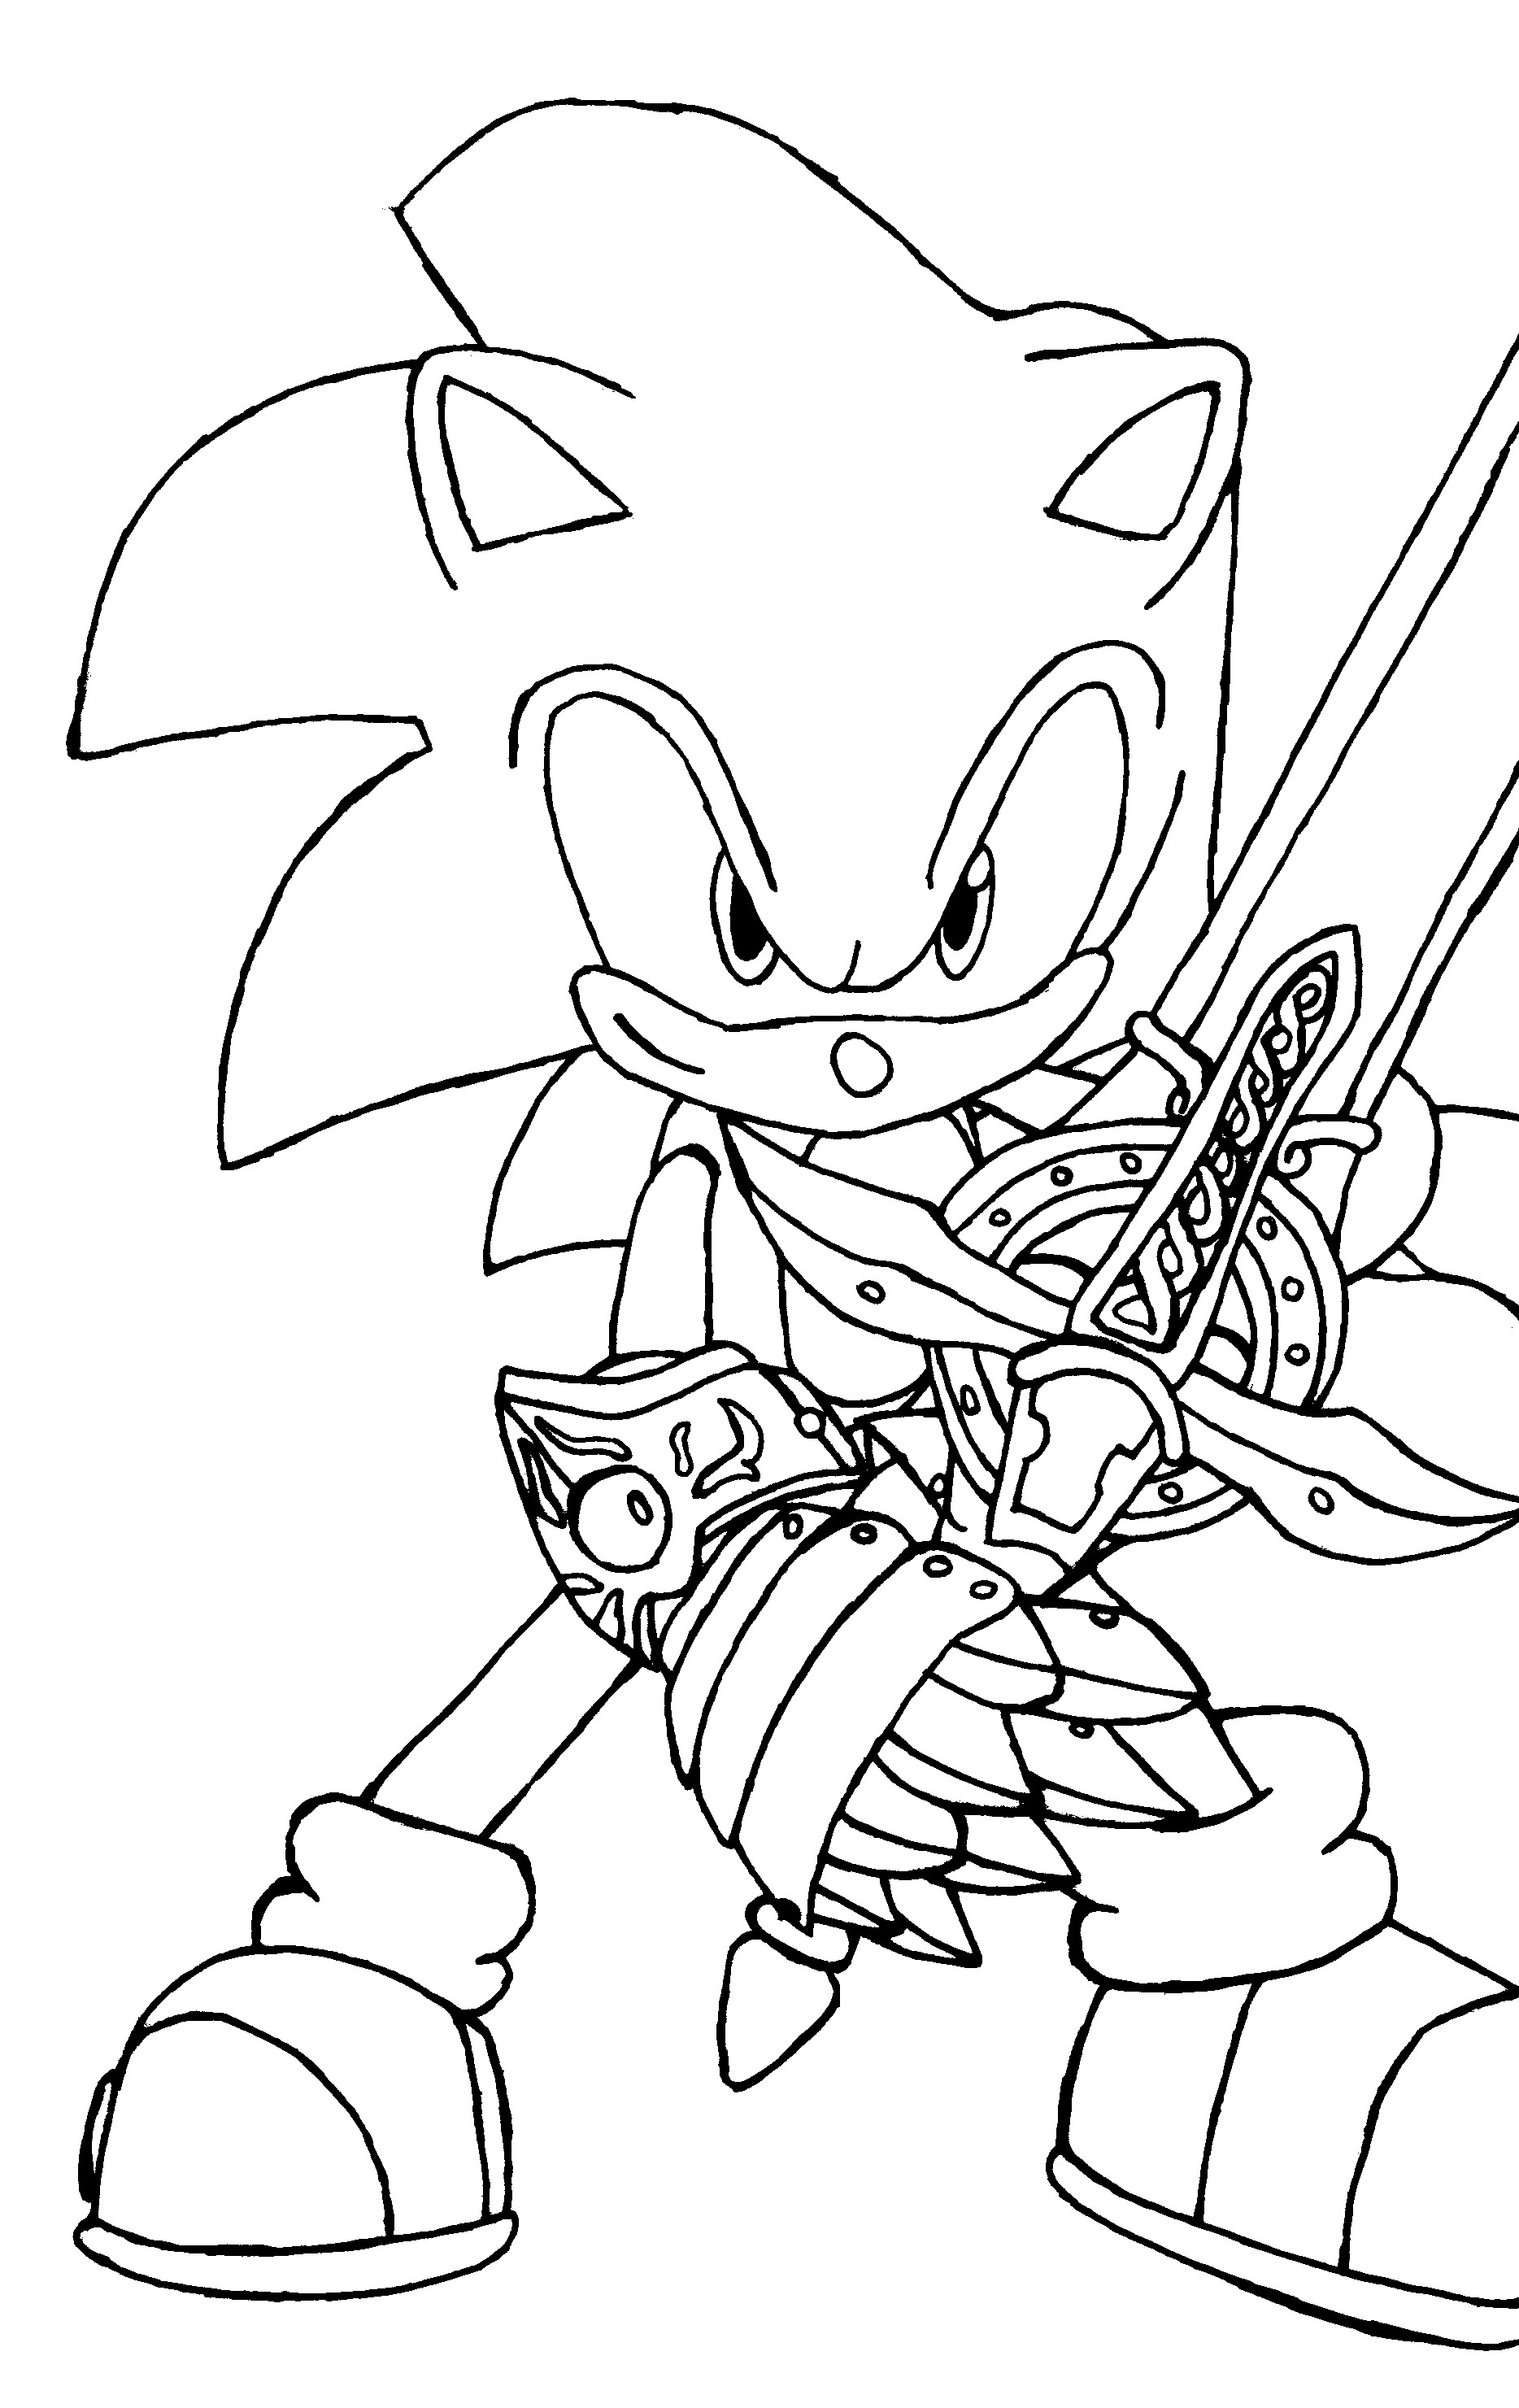 sonic printable coloring pages free printable sonic the hedgehog coloring pages for kids pages printable sonic coloring